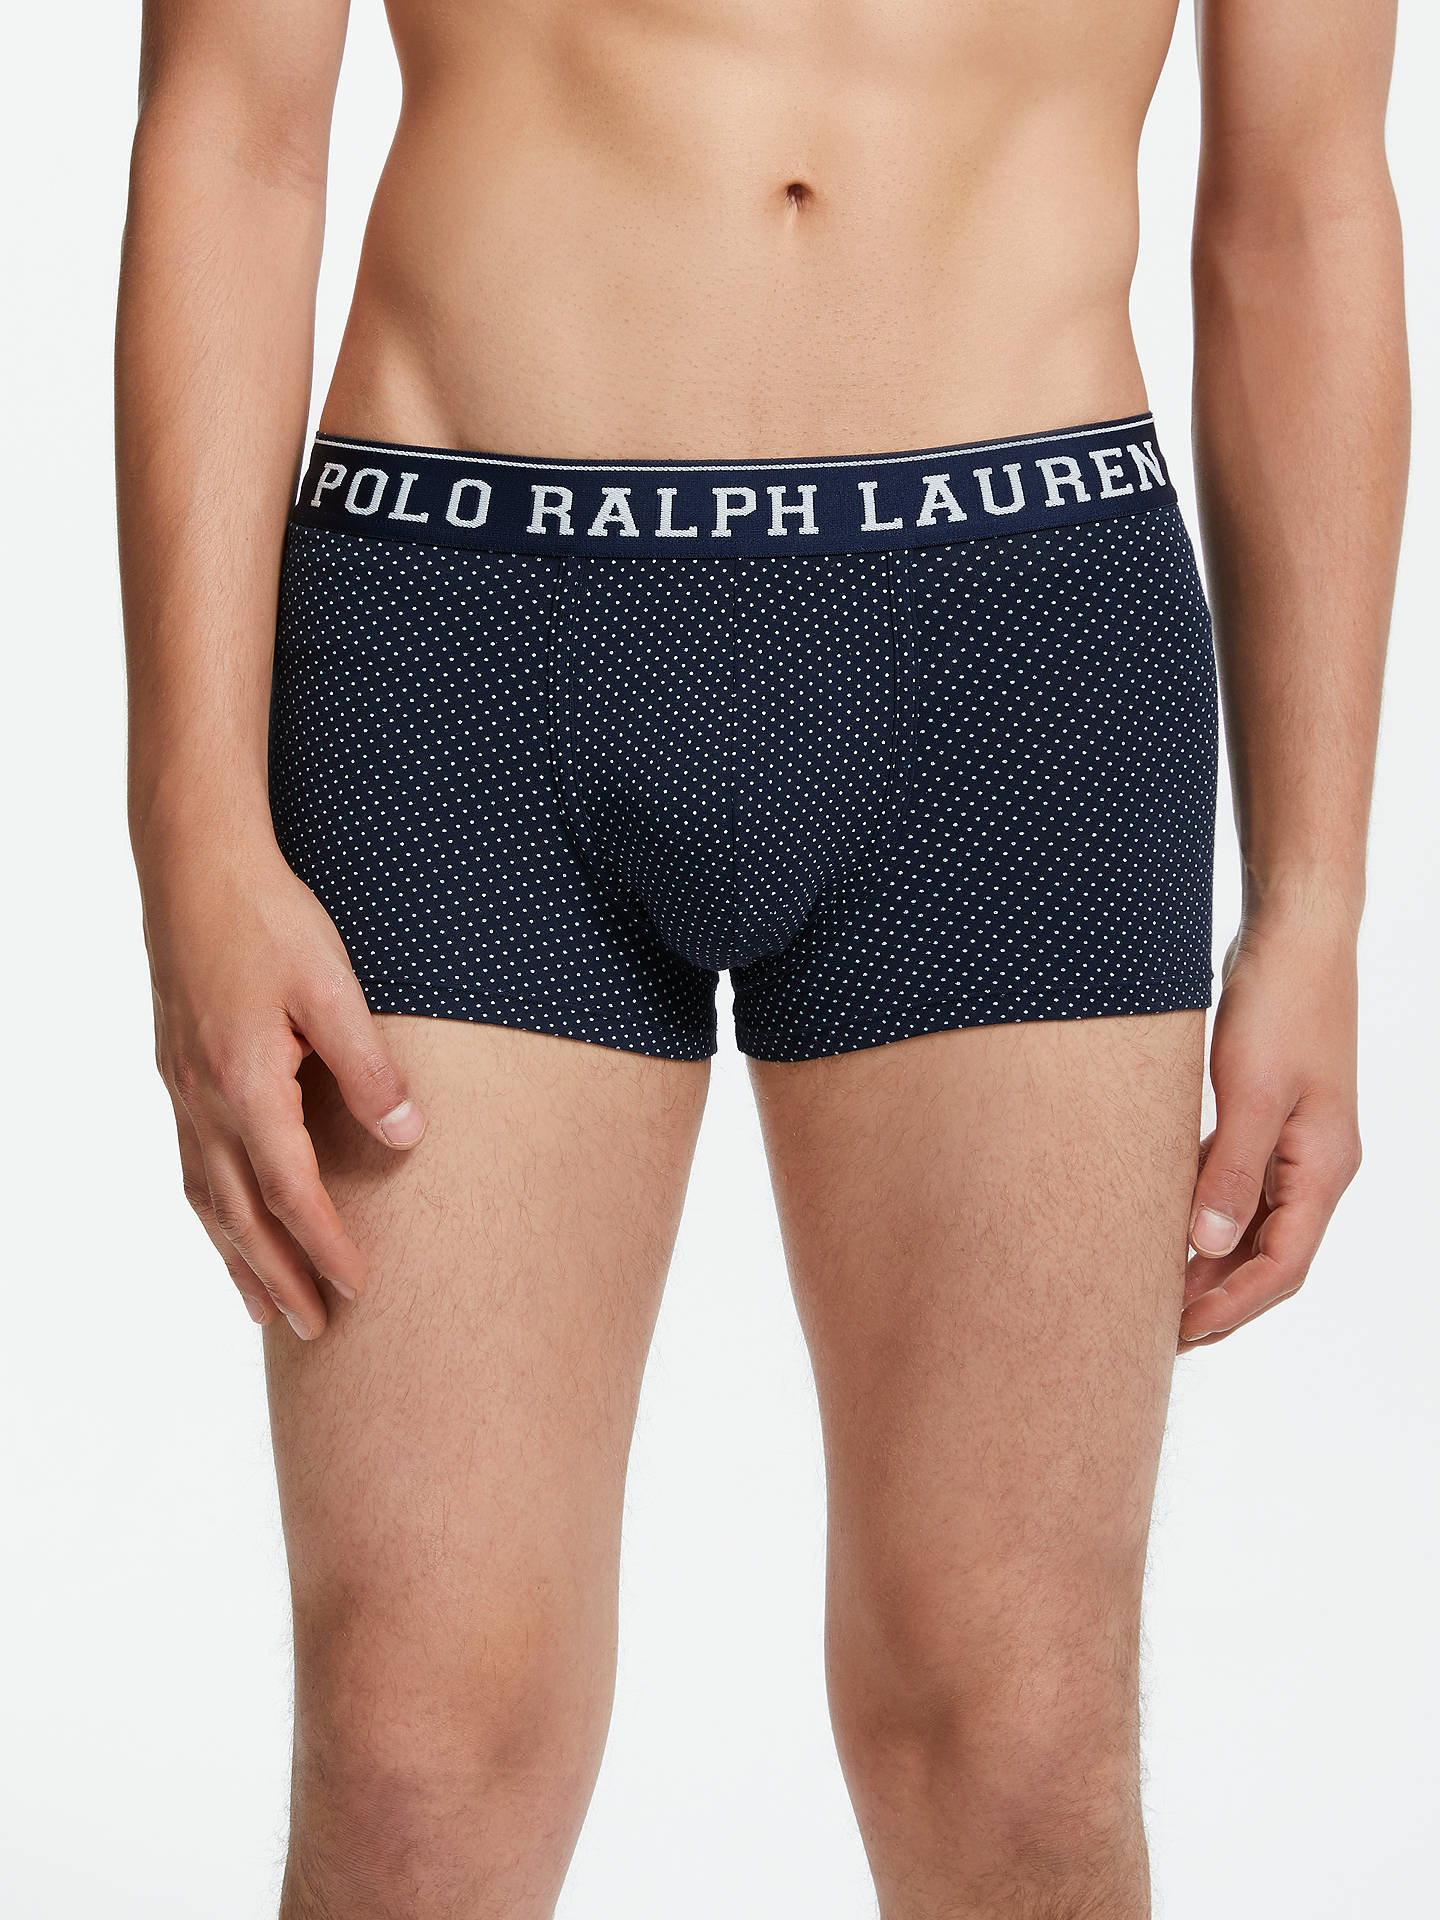 Buy Polo Ralph Lauren Cruise Dot Trunks, Navy, M Online at johnlewis.com